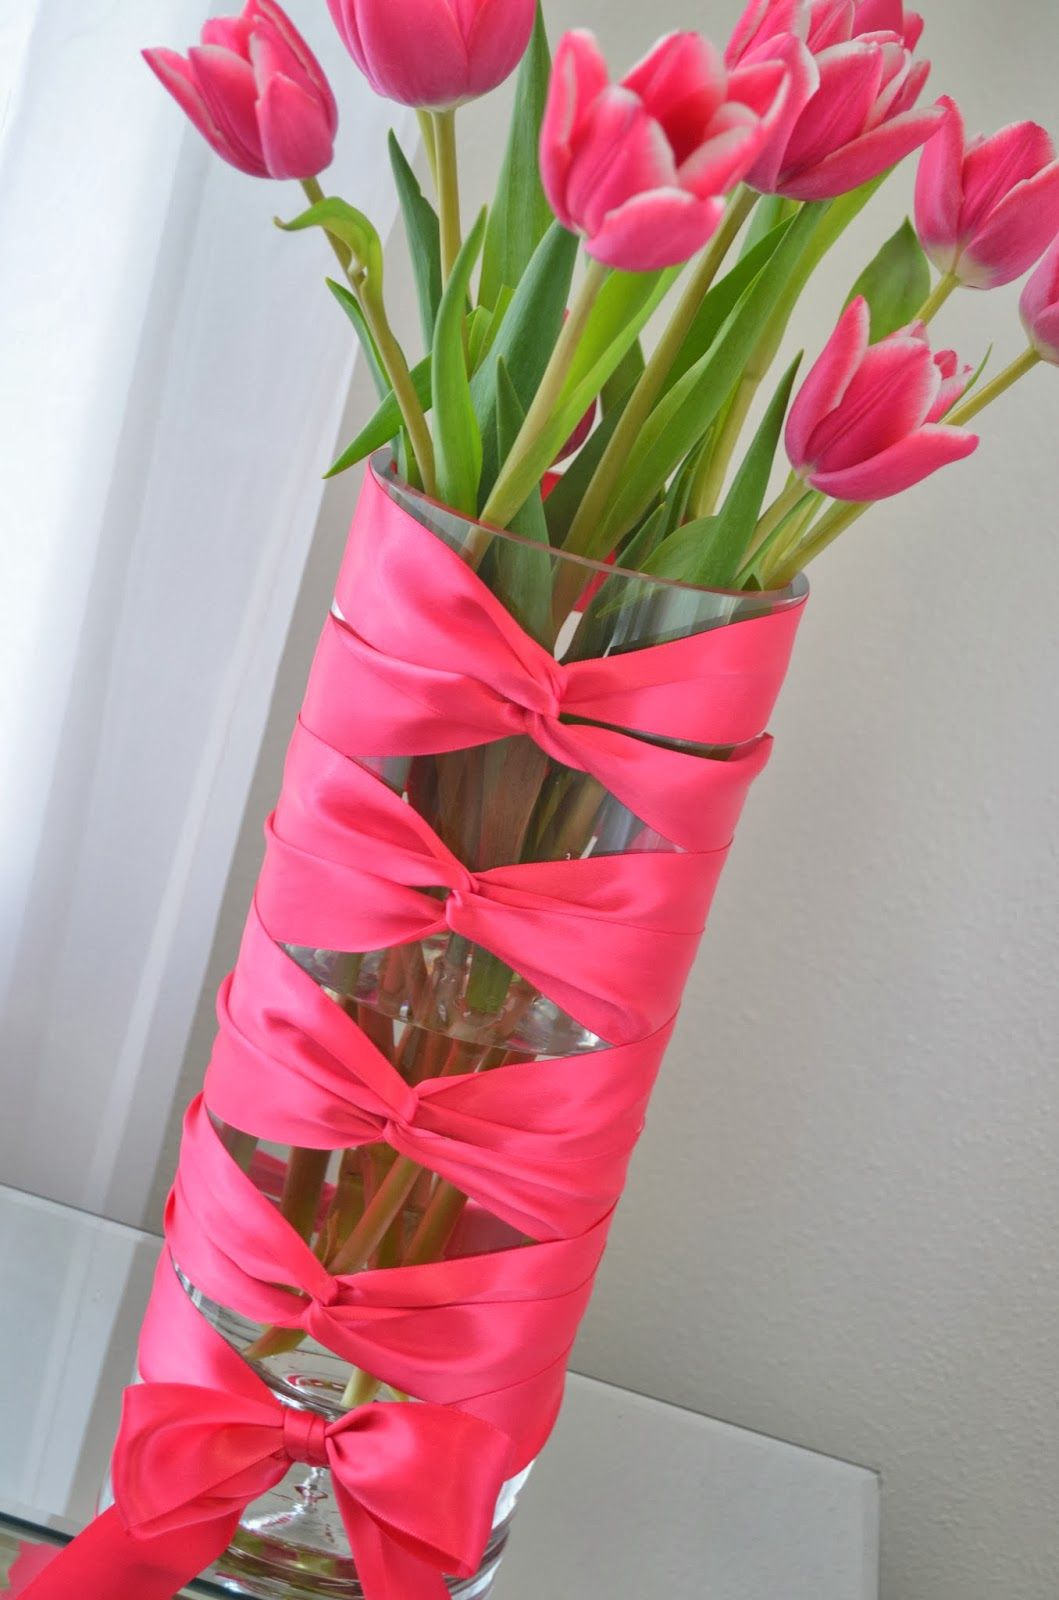 Diy flower vase idea corset vase with tulips modern bohemian diy flower vase idea corset vase with tulips reviewsmspy